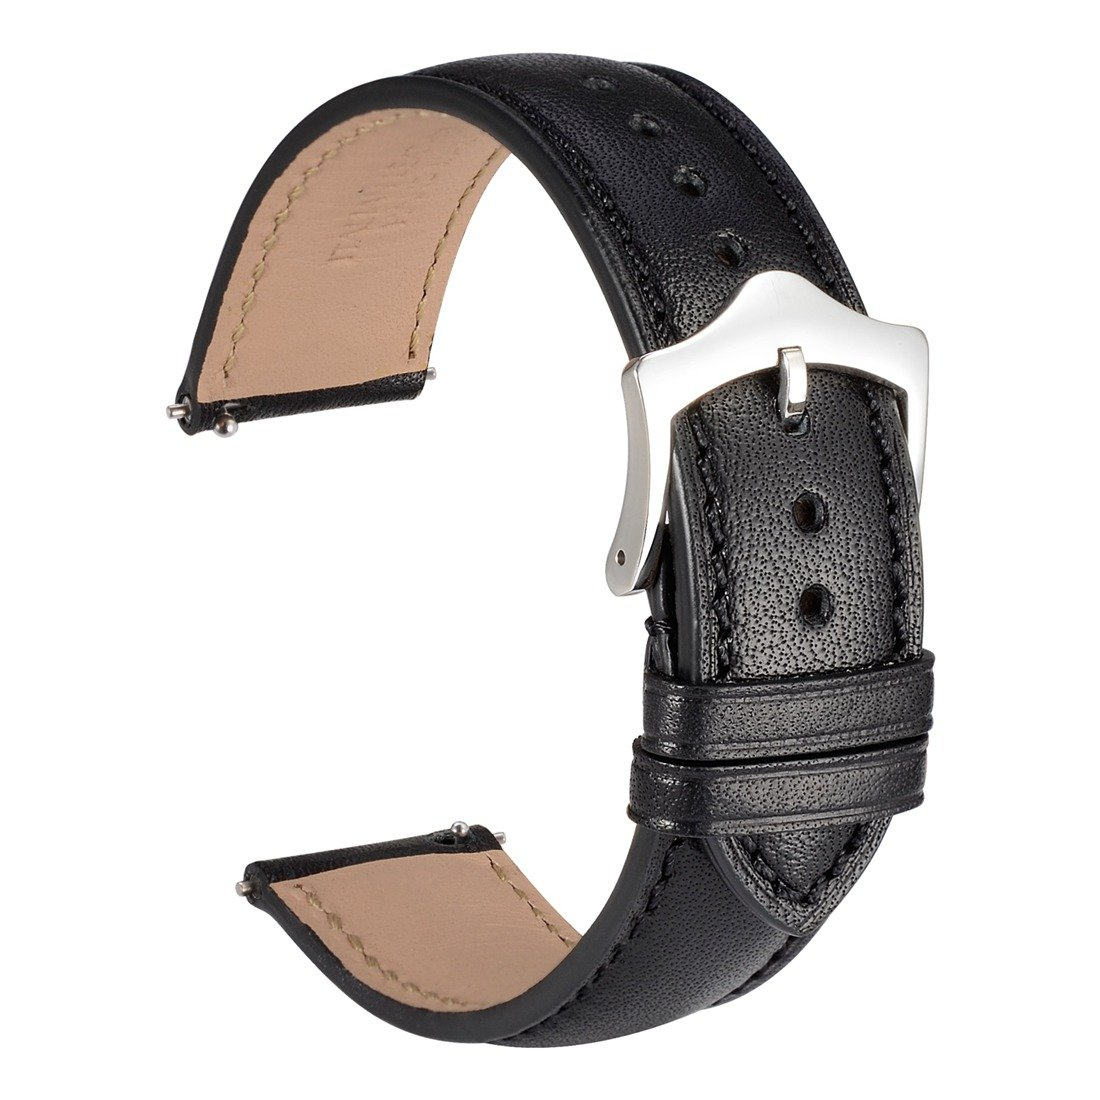 f209e1461 WOCCI Watch Strap-18mm 20mm 22mm Untextured Leather Watch Band,Replacement  Bracelet for Men or Women